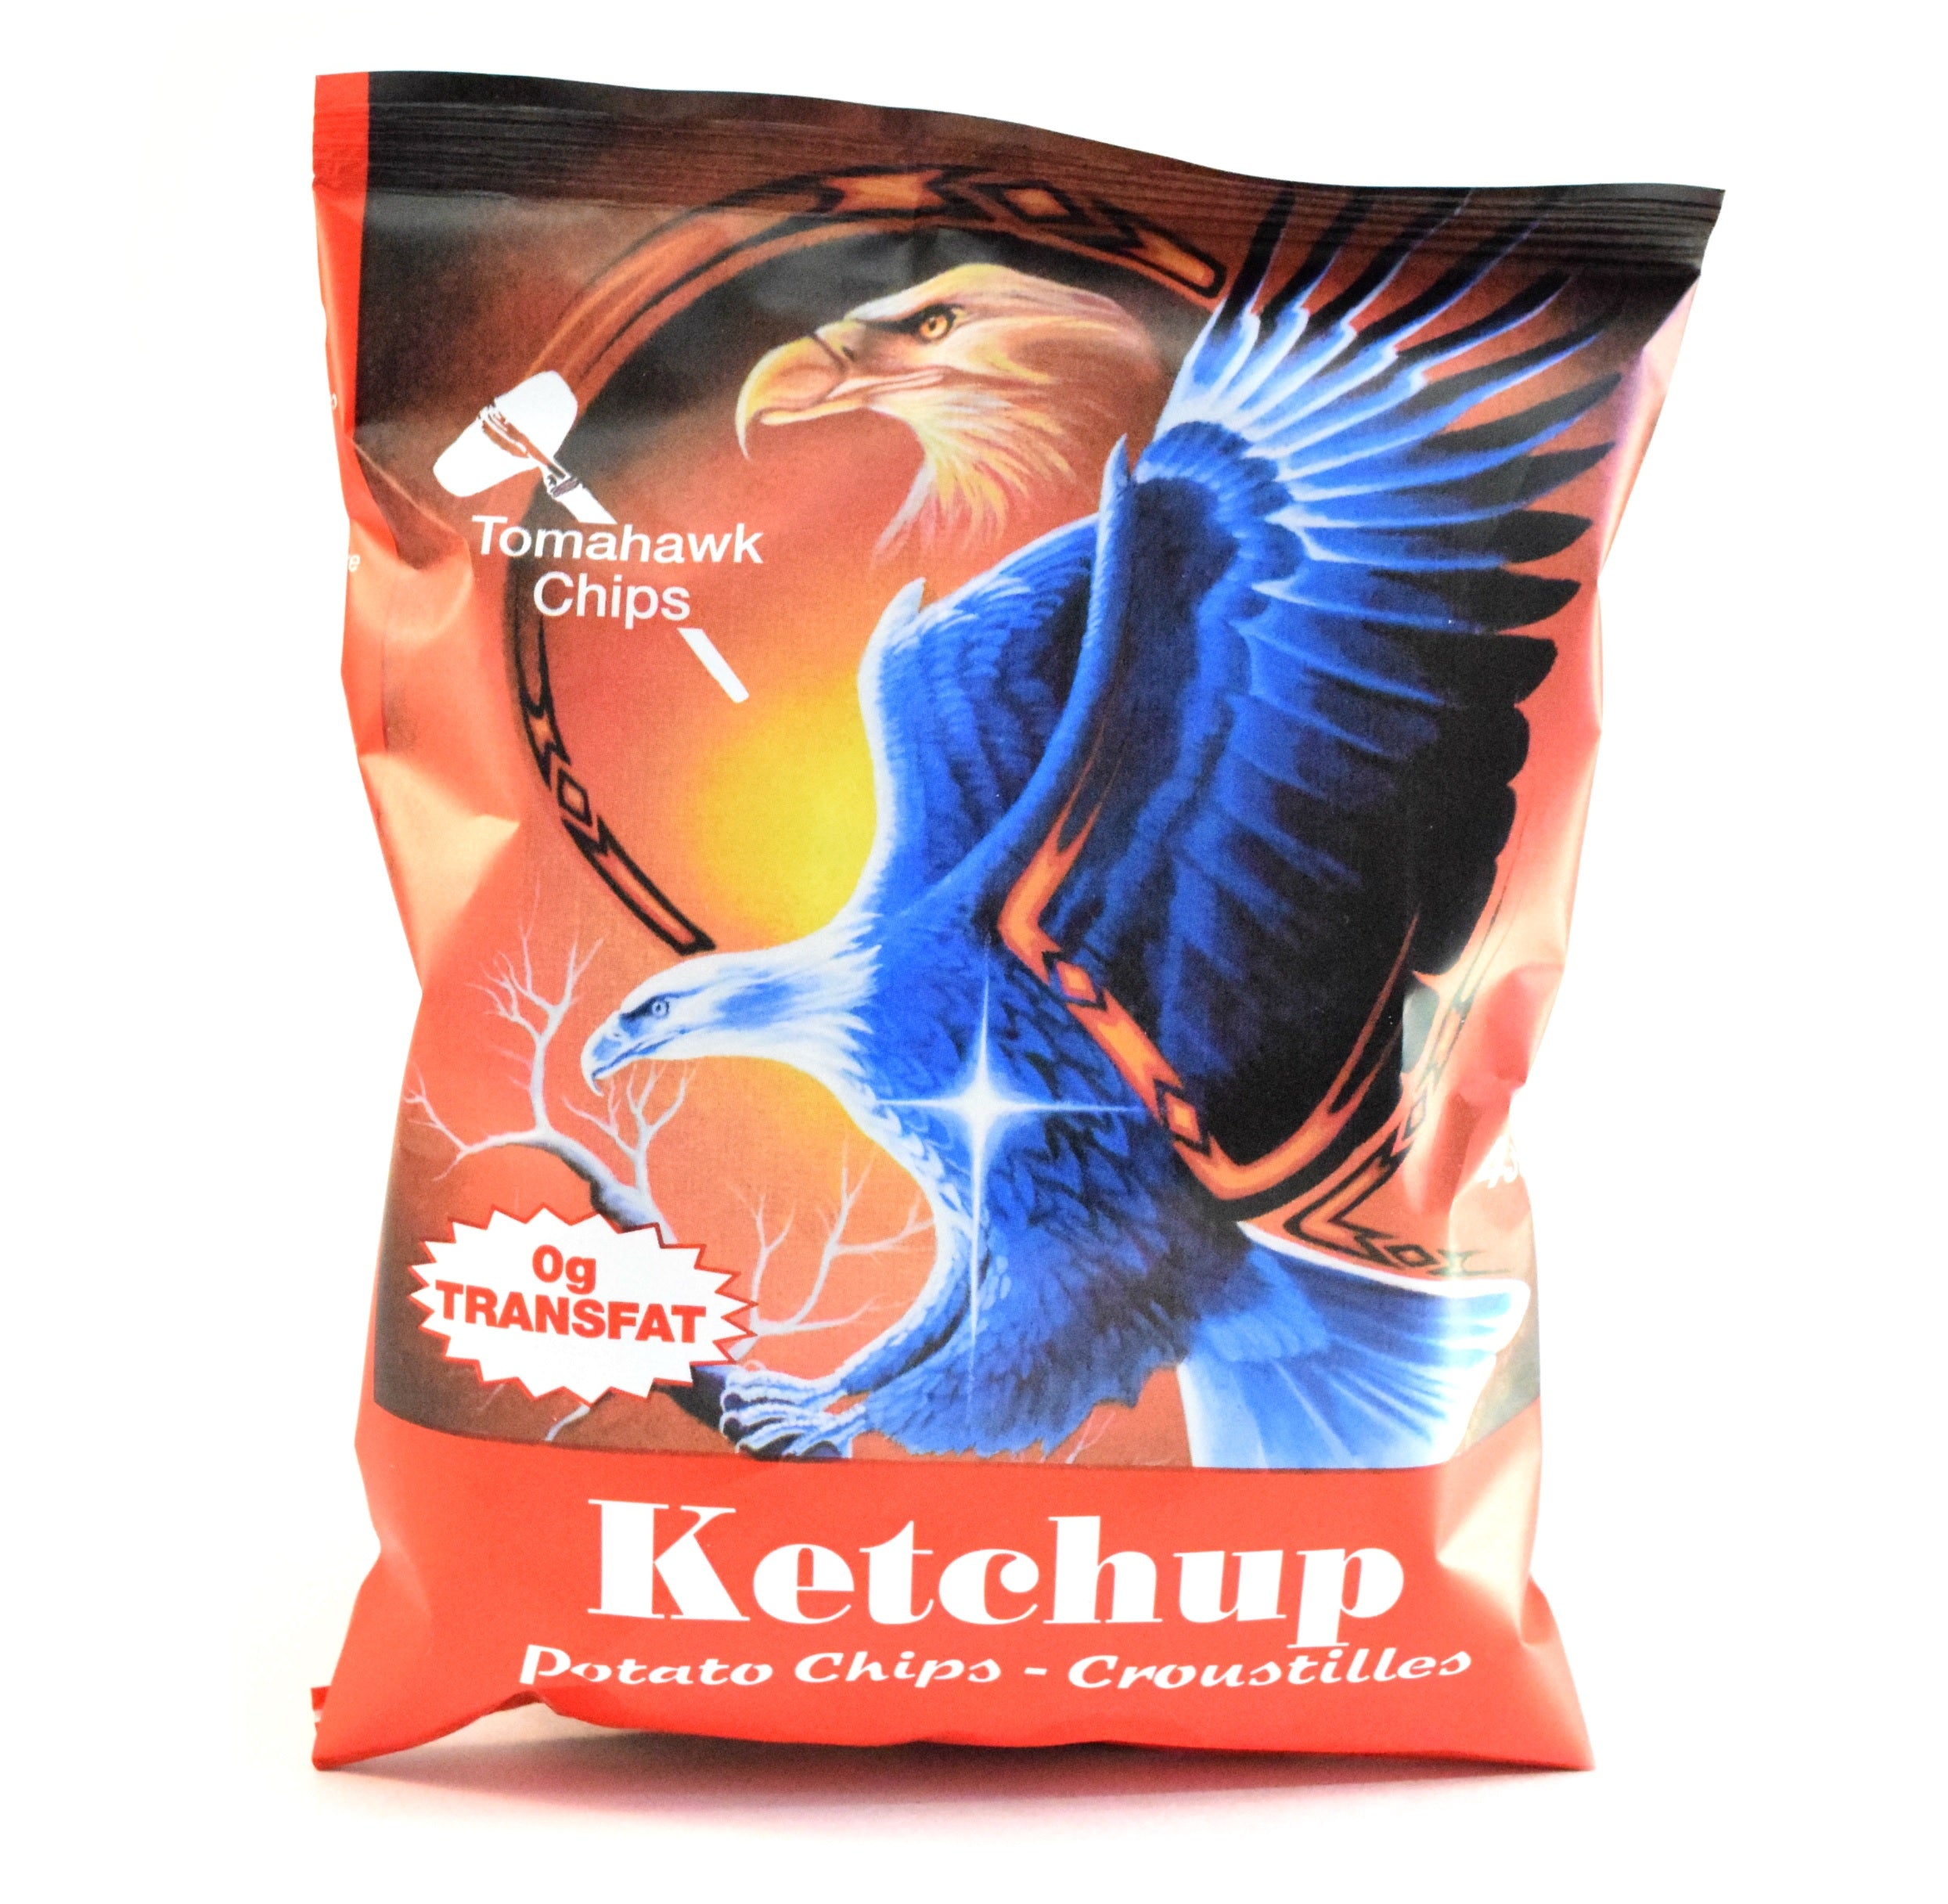 Ketchup Potato Chips 43g by Tomahawk